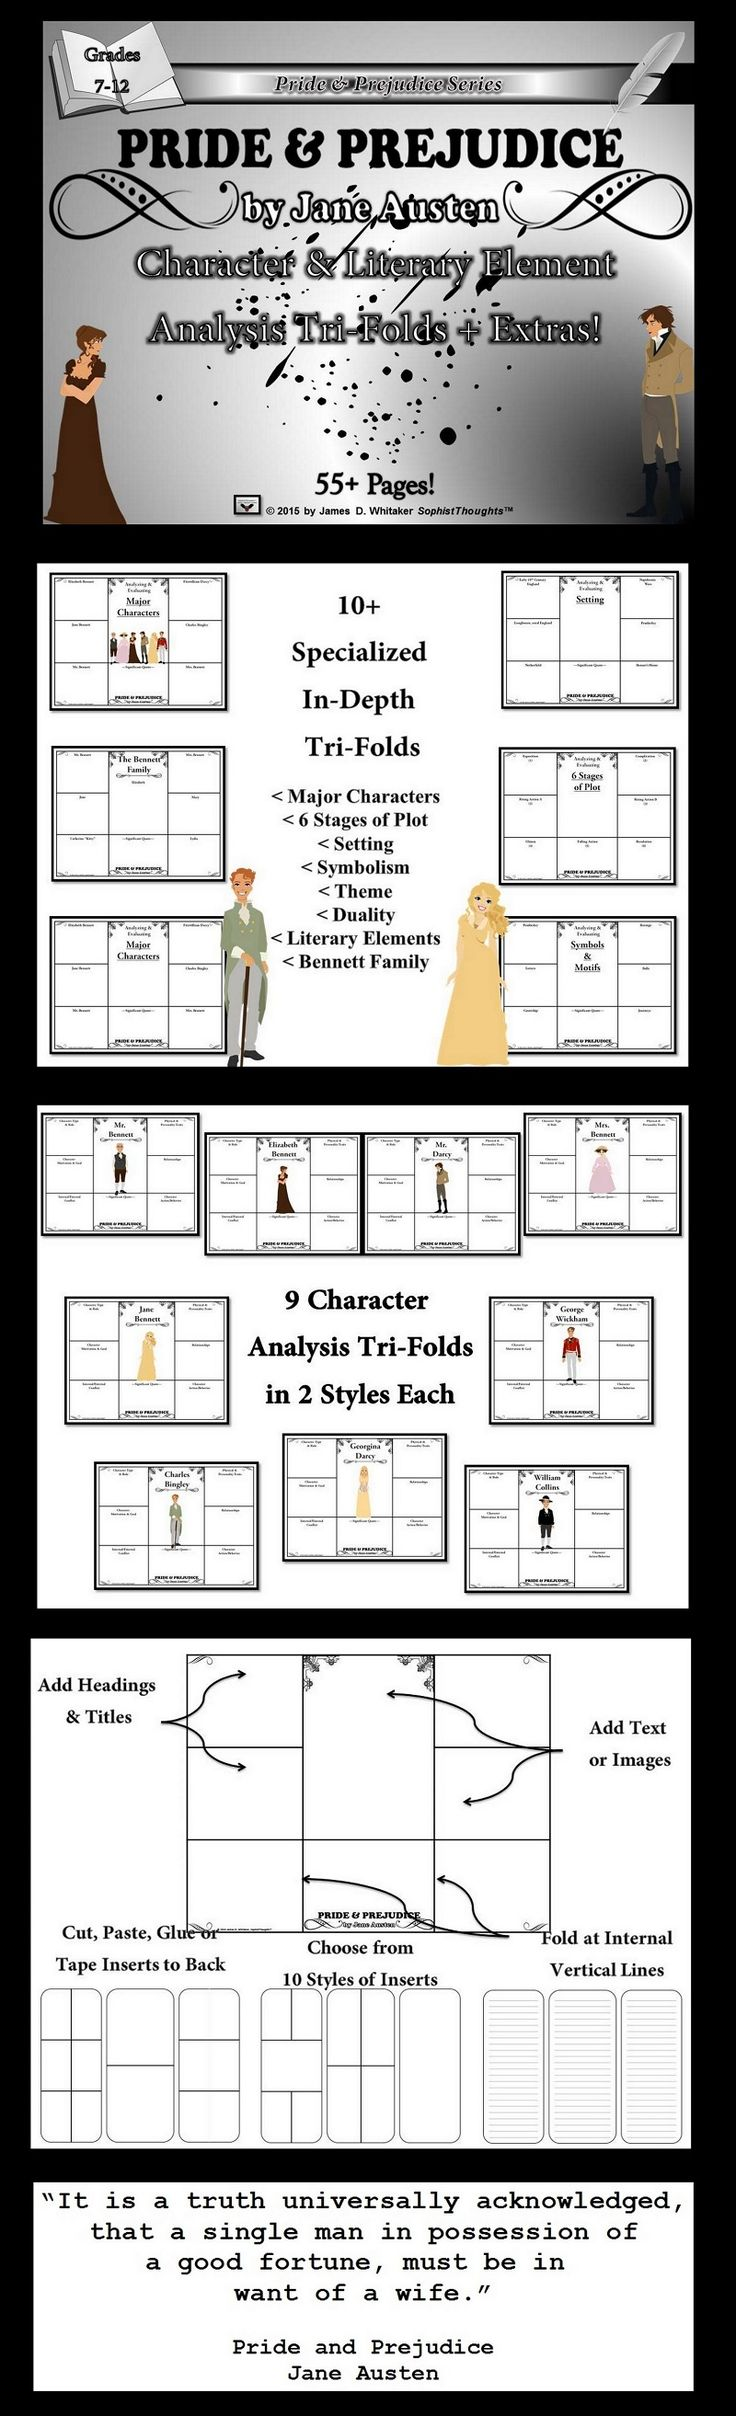 ideas about pride and prejudice analysis pride prejudice by jane austen character literary element analysis tri folds extras